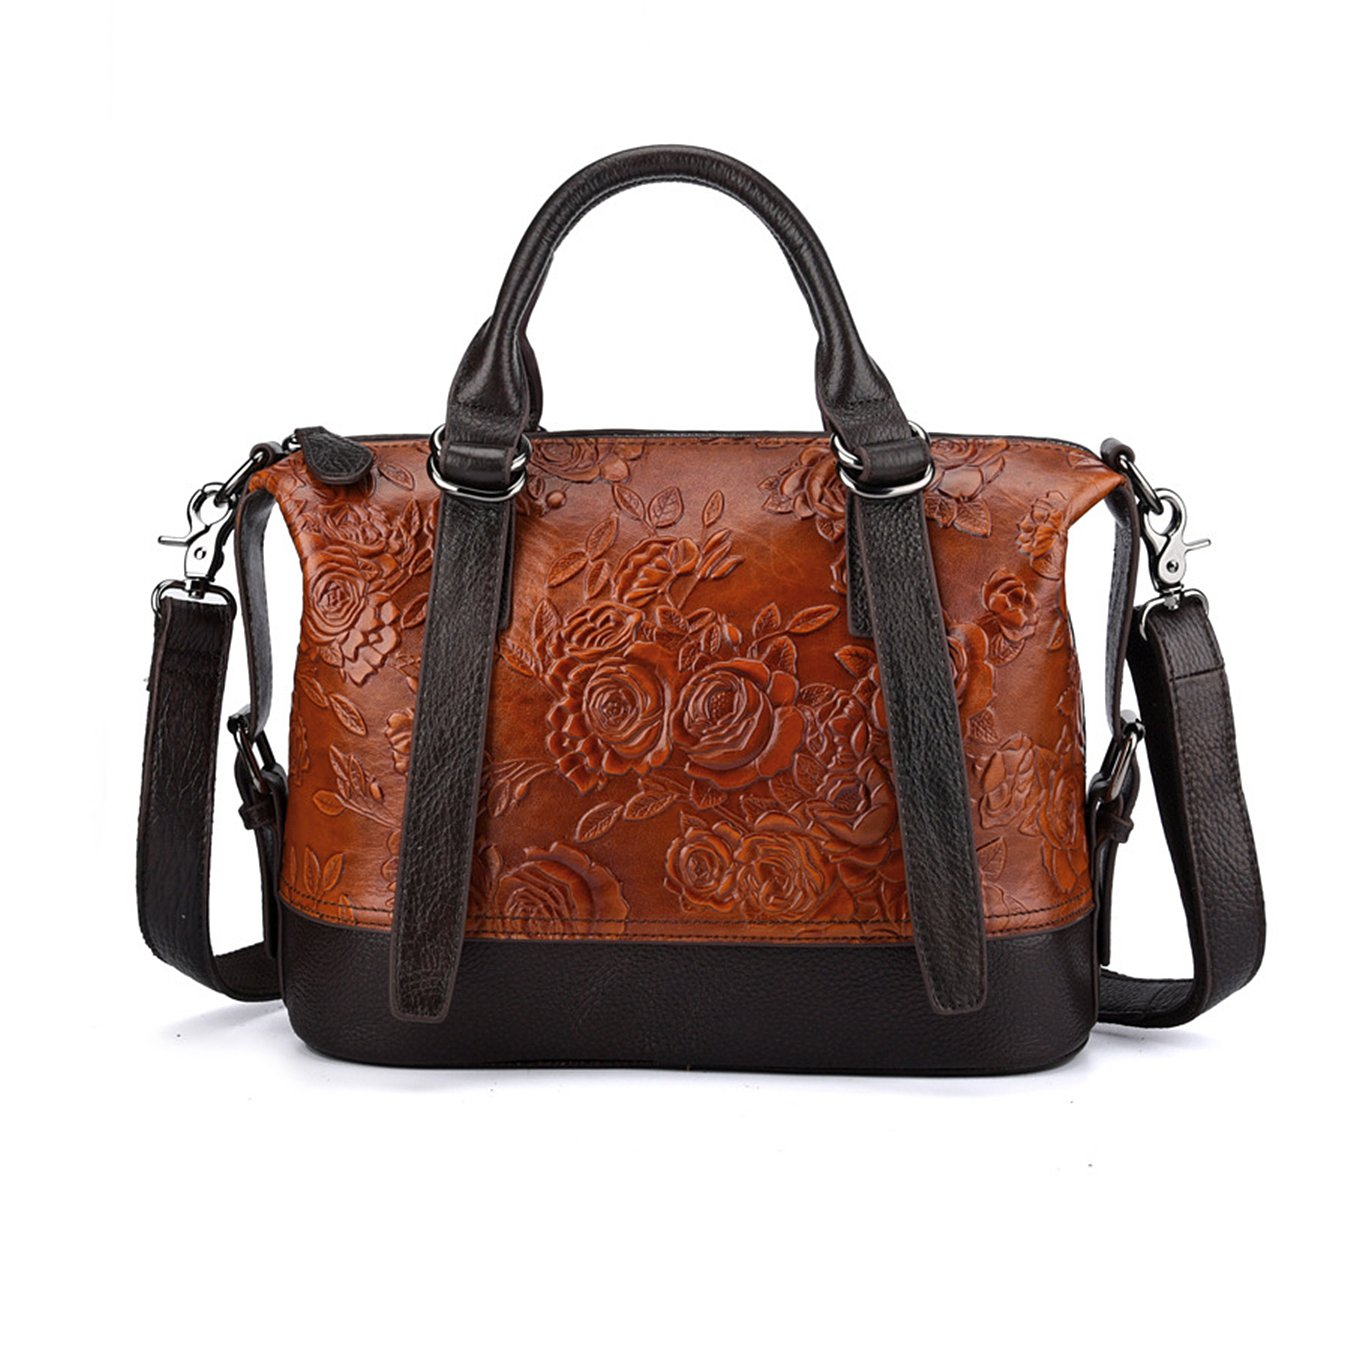 Crossbody Bag for Women Vintage Rose Top Handle Tote Purses Genuine Leather Satchels Handbag (brown)